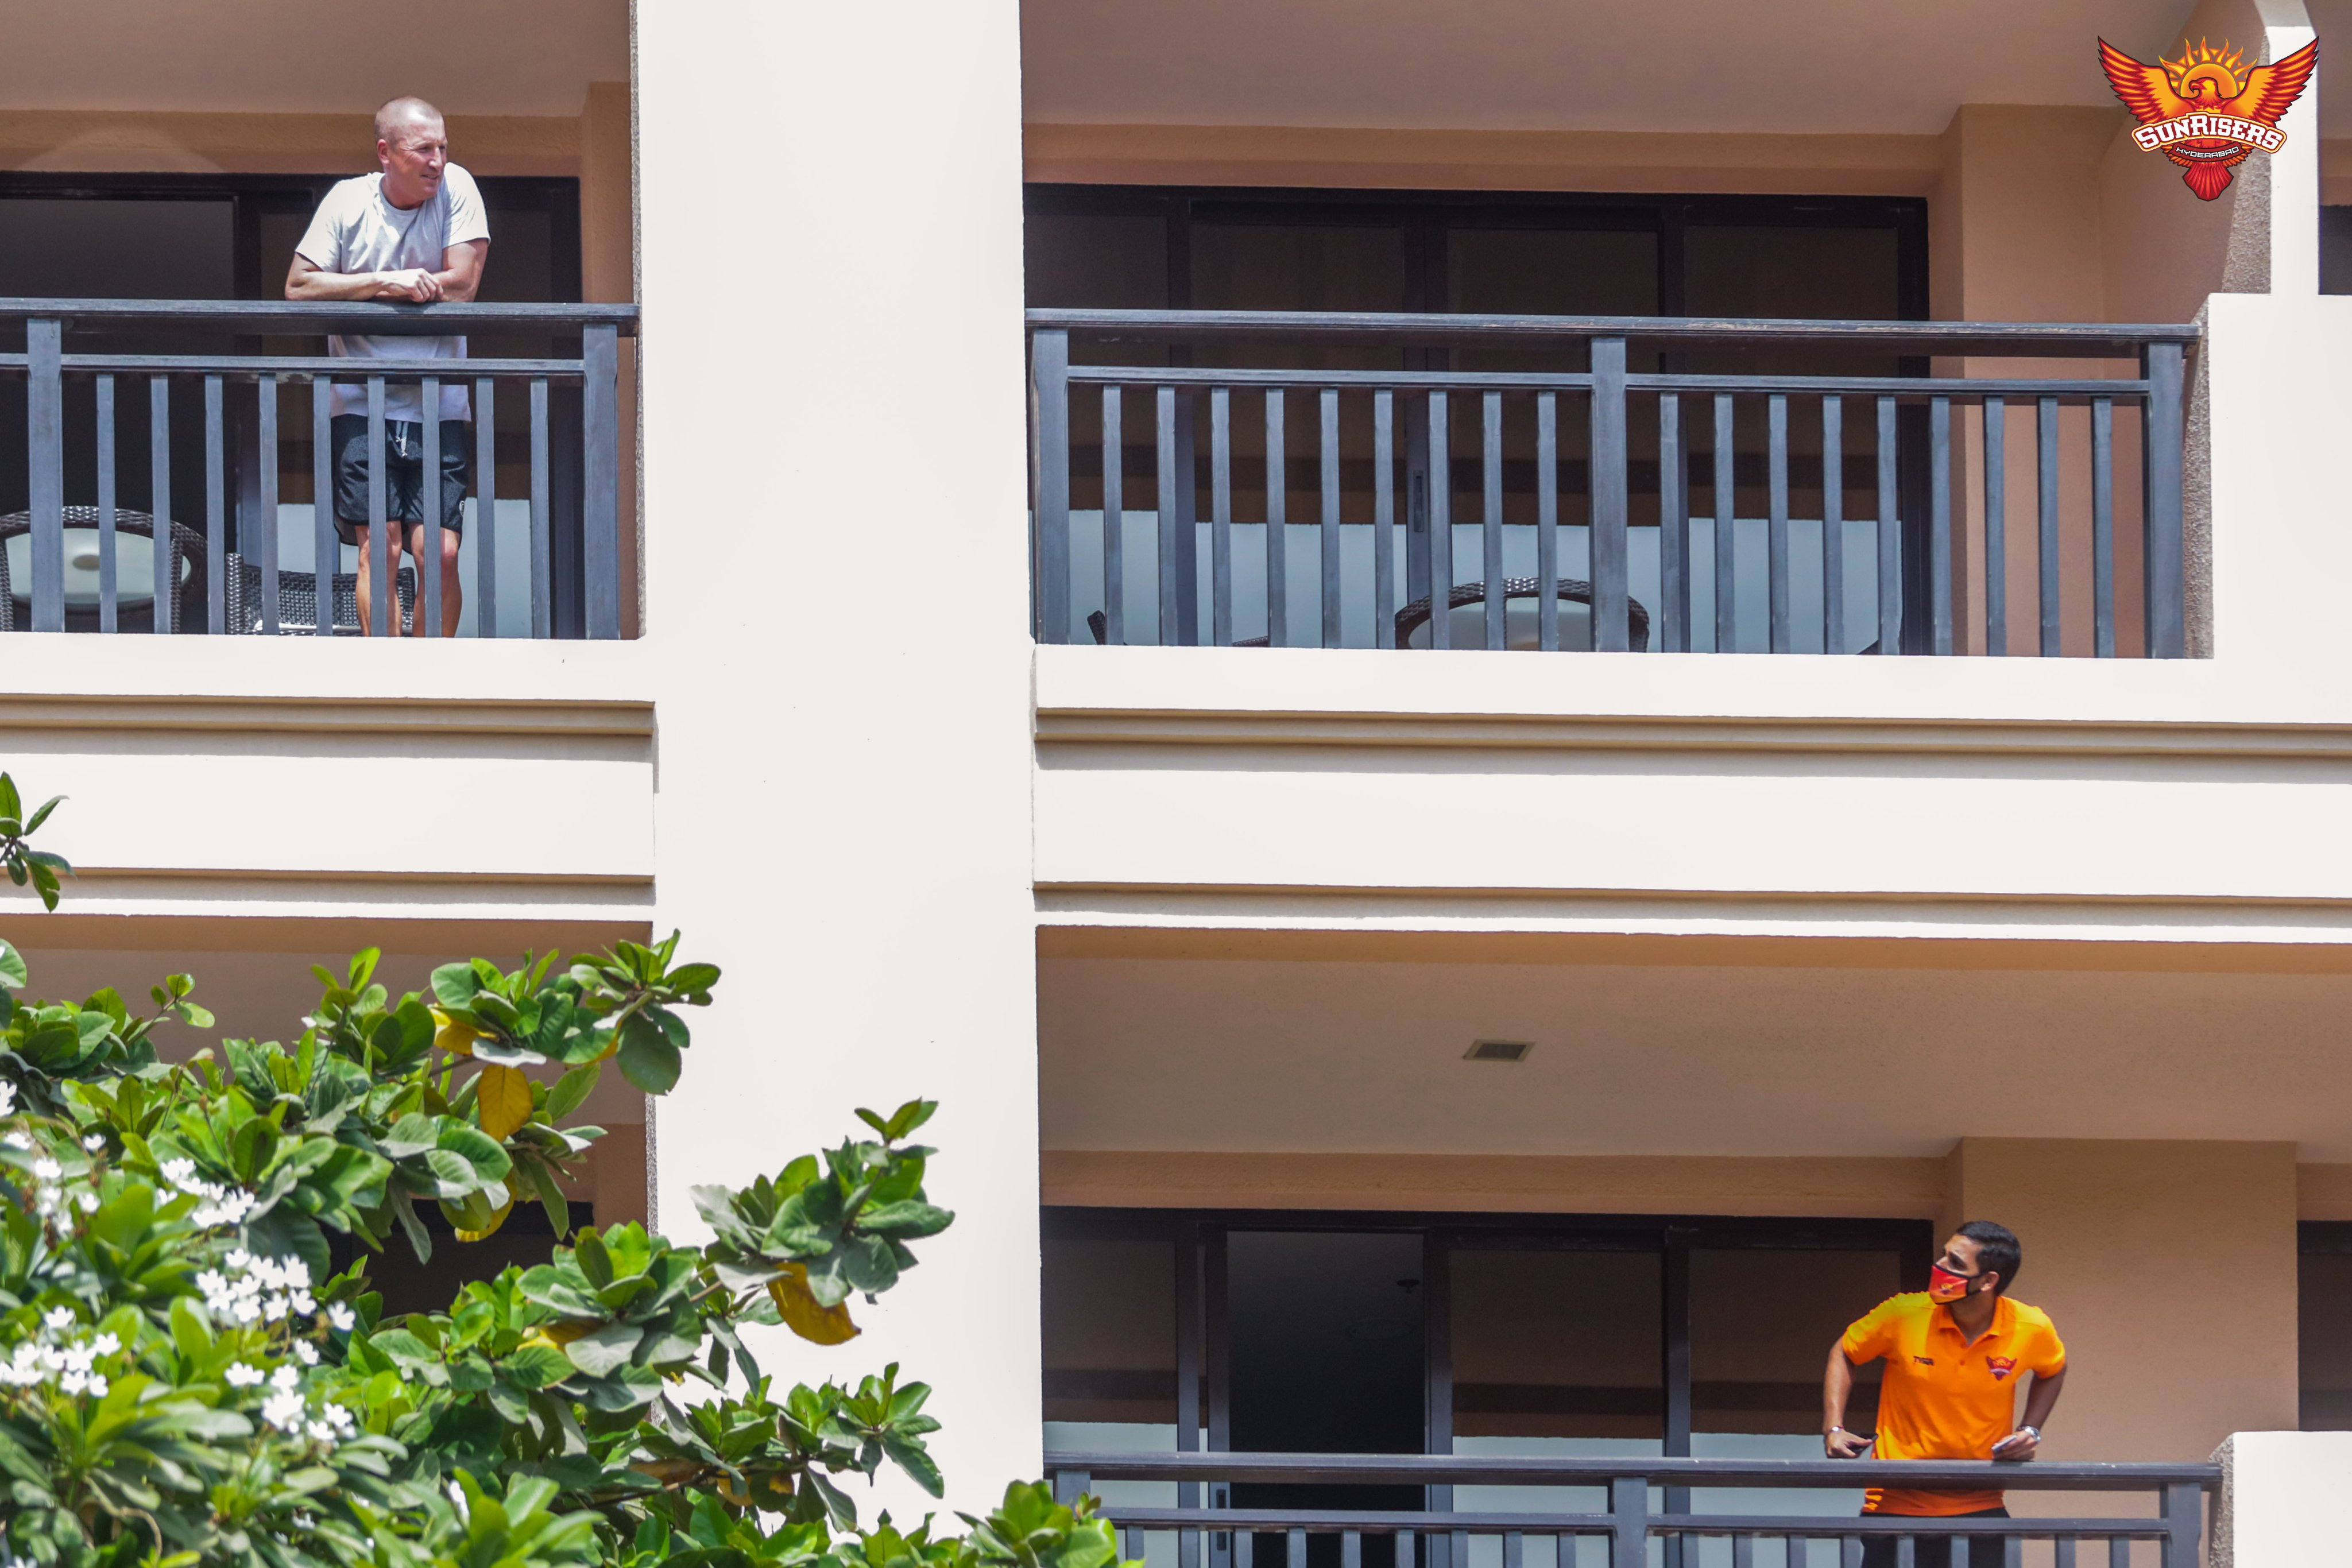 Bhuvaneshwar Kumar and Brad Haddin talk to each other from their balconies while in quarantine. (Credits: Twitter/ Sunrisers Hyderabad)